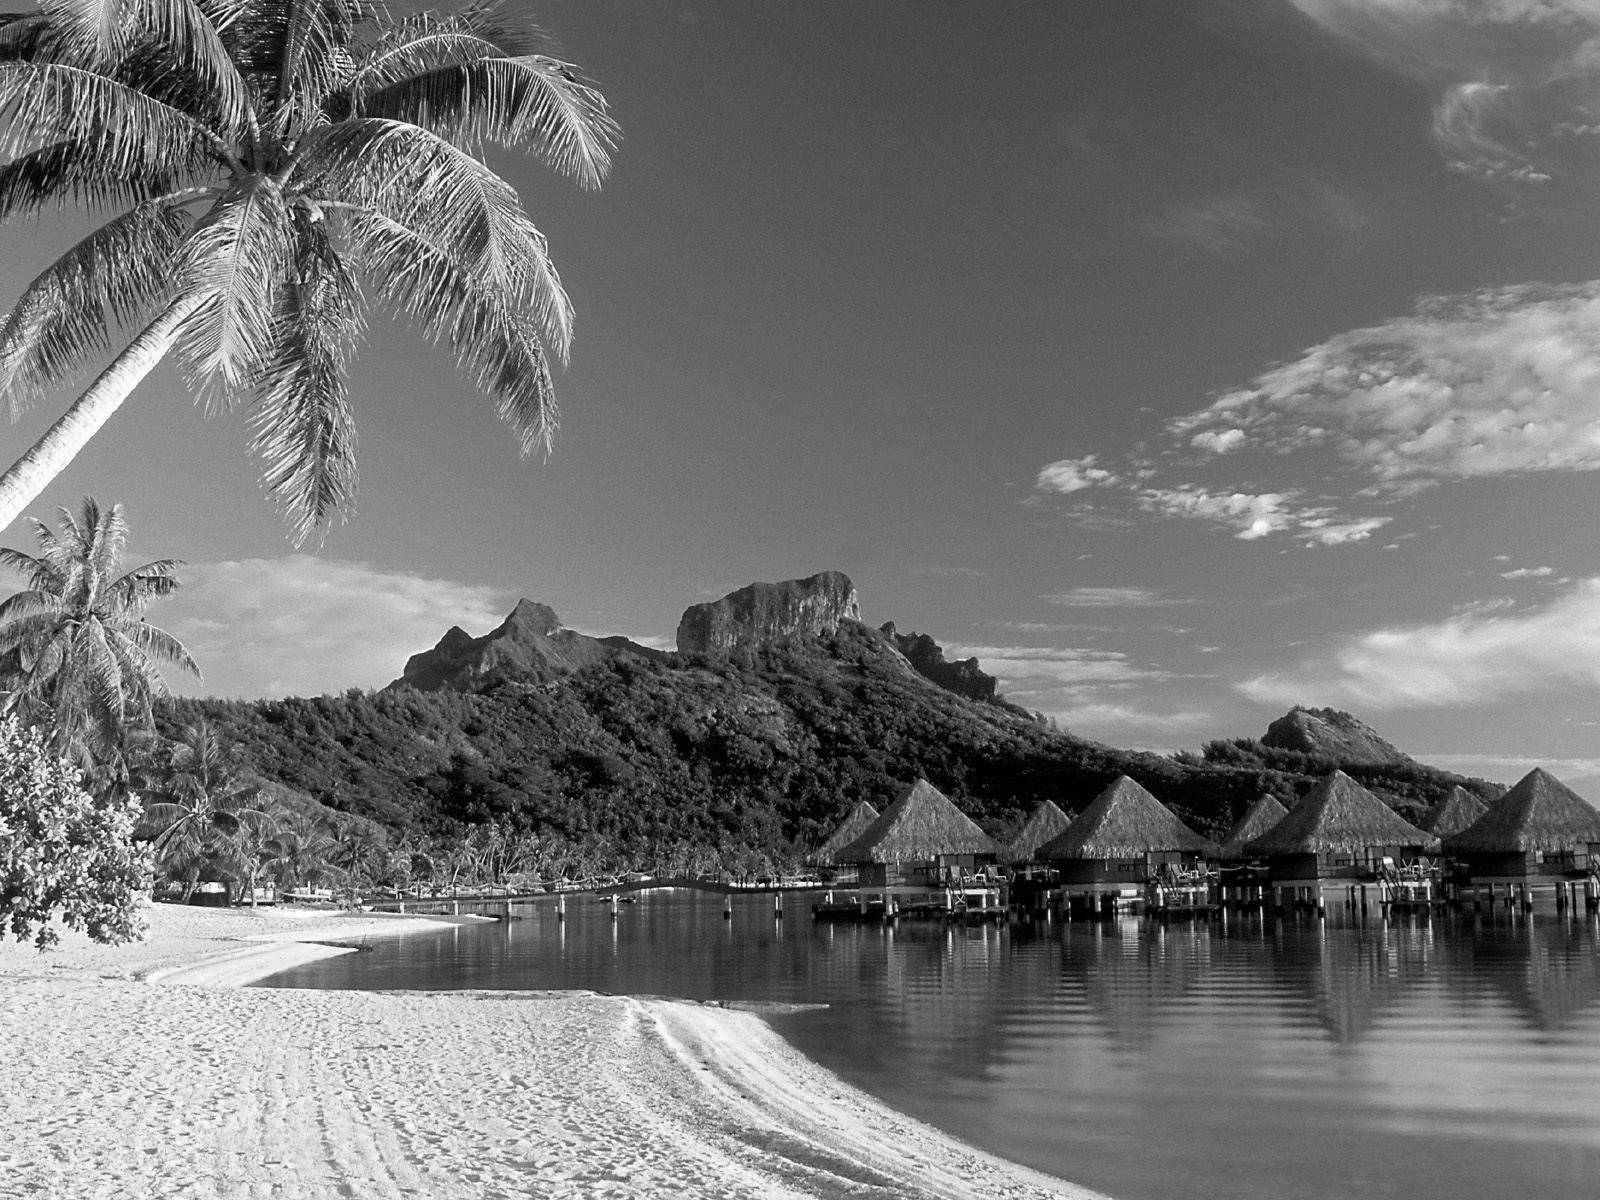 Black and White Wallpapers Black and White Beach Landscape HD 1600x1200